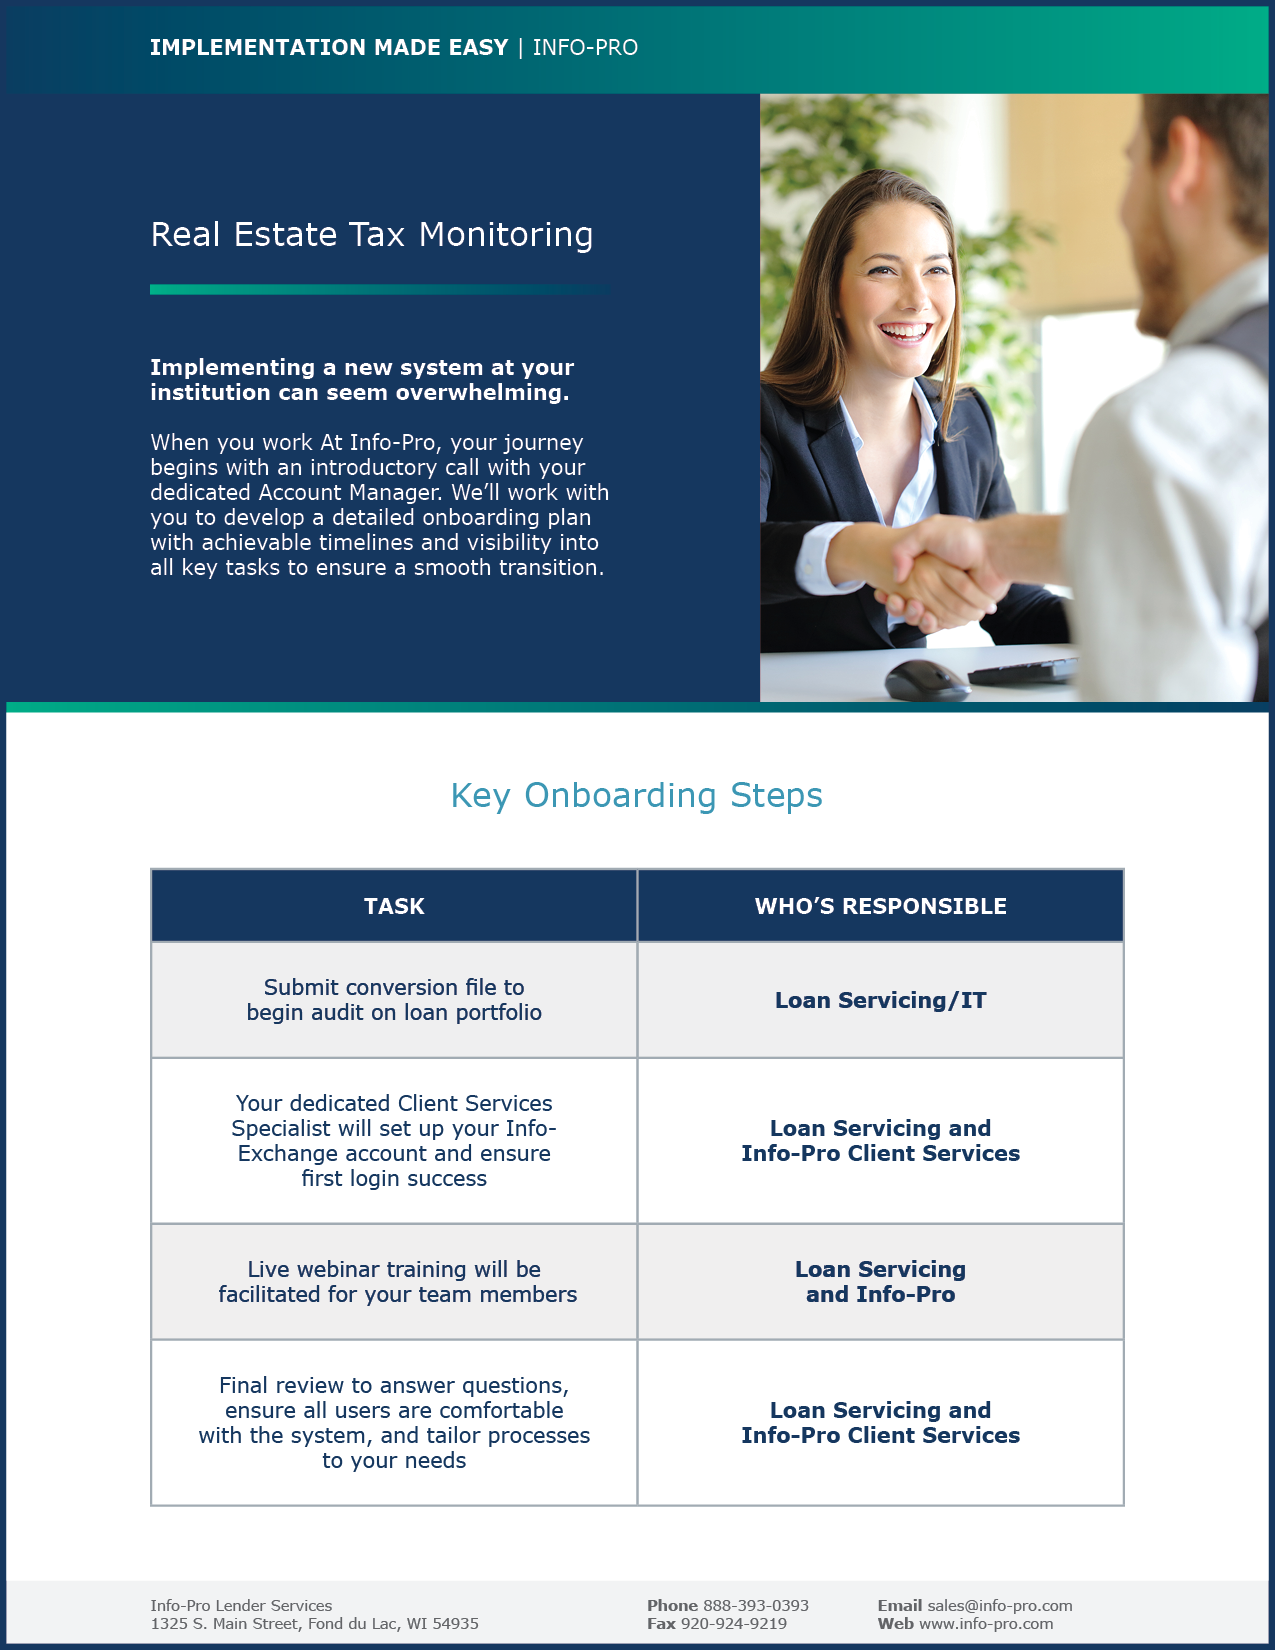 IFP_FAQ_Real Estate Tax Monitoring_Cover